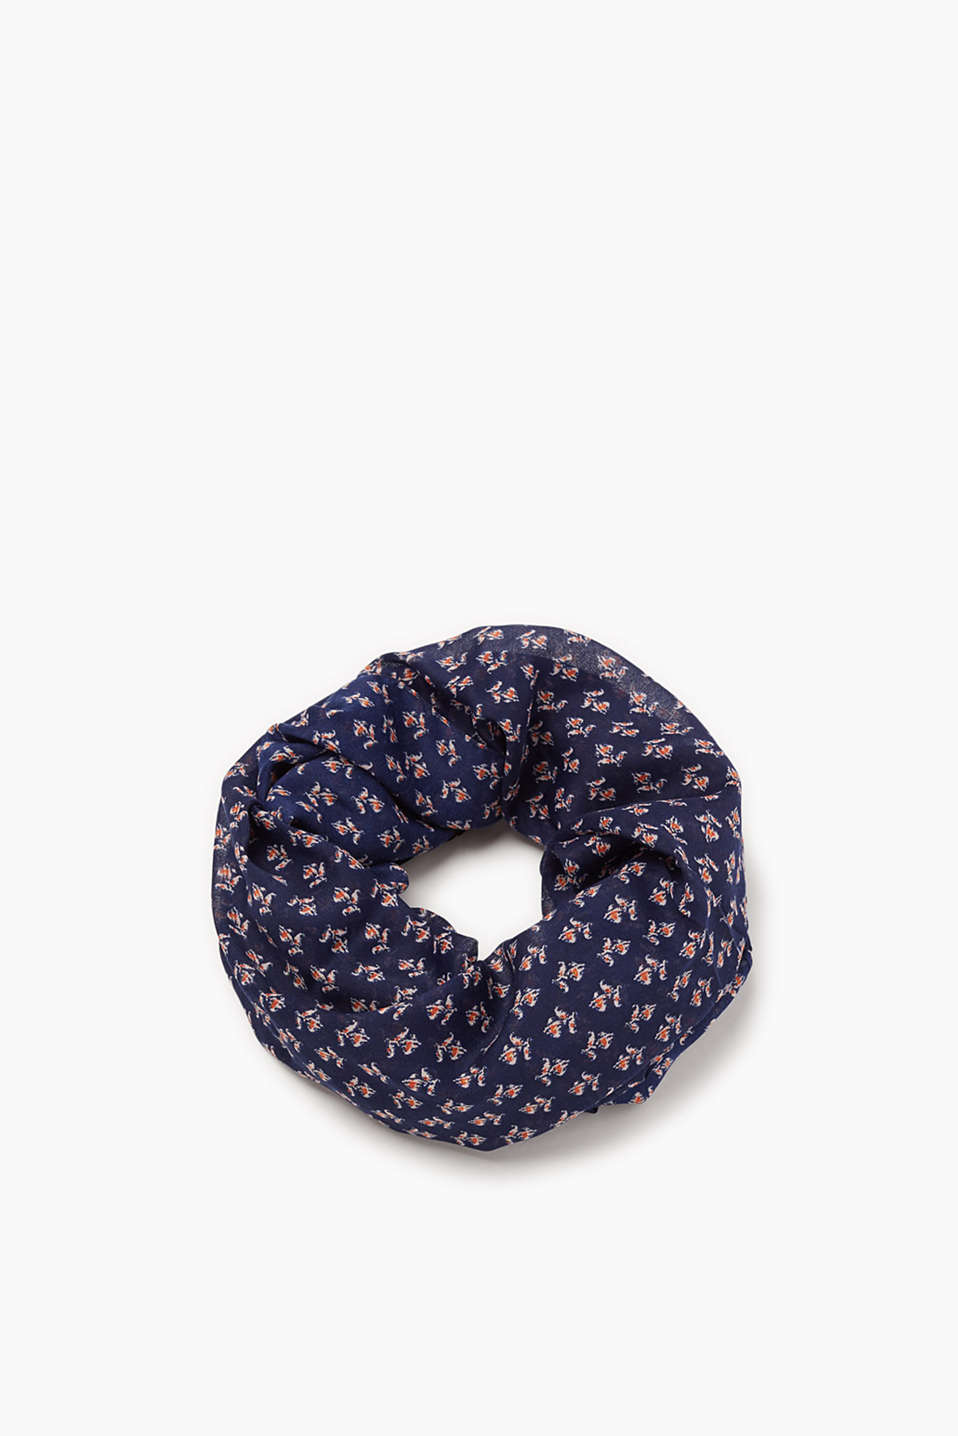 Comfortable, soft and lightweight snood with a print